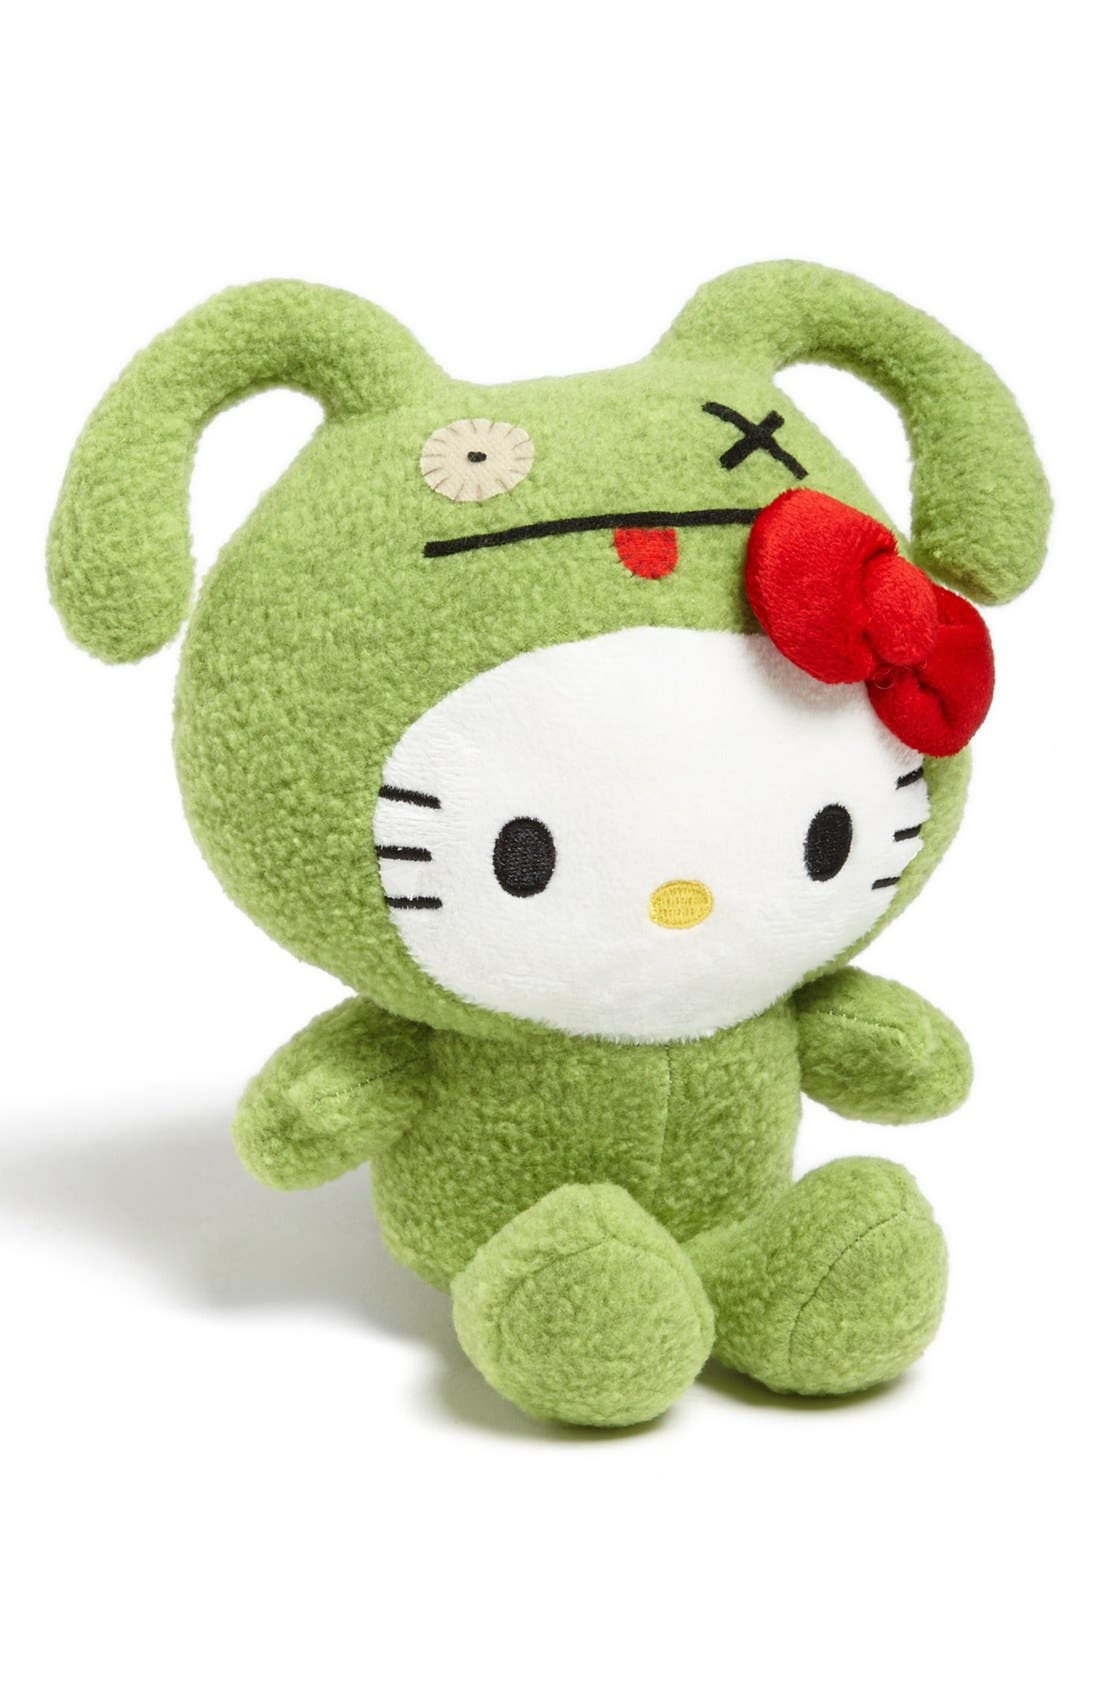 Alternate Image 1 Selected - Gund 'OX Hello Kitty® UGLYDOLL' Stuffed Doll